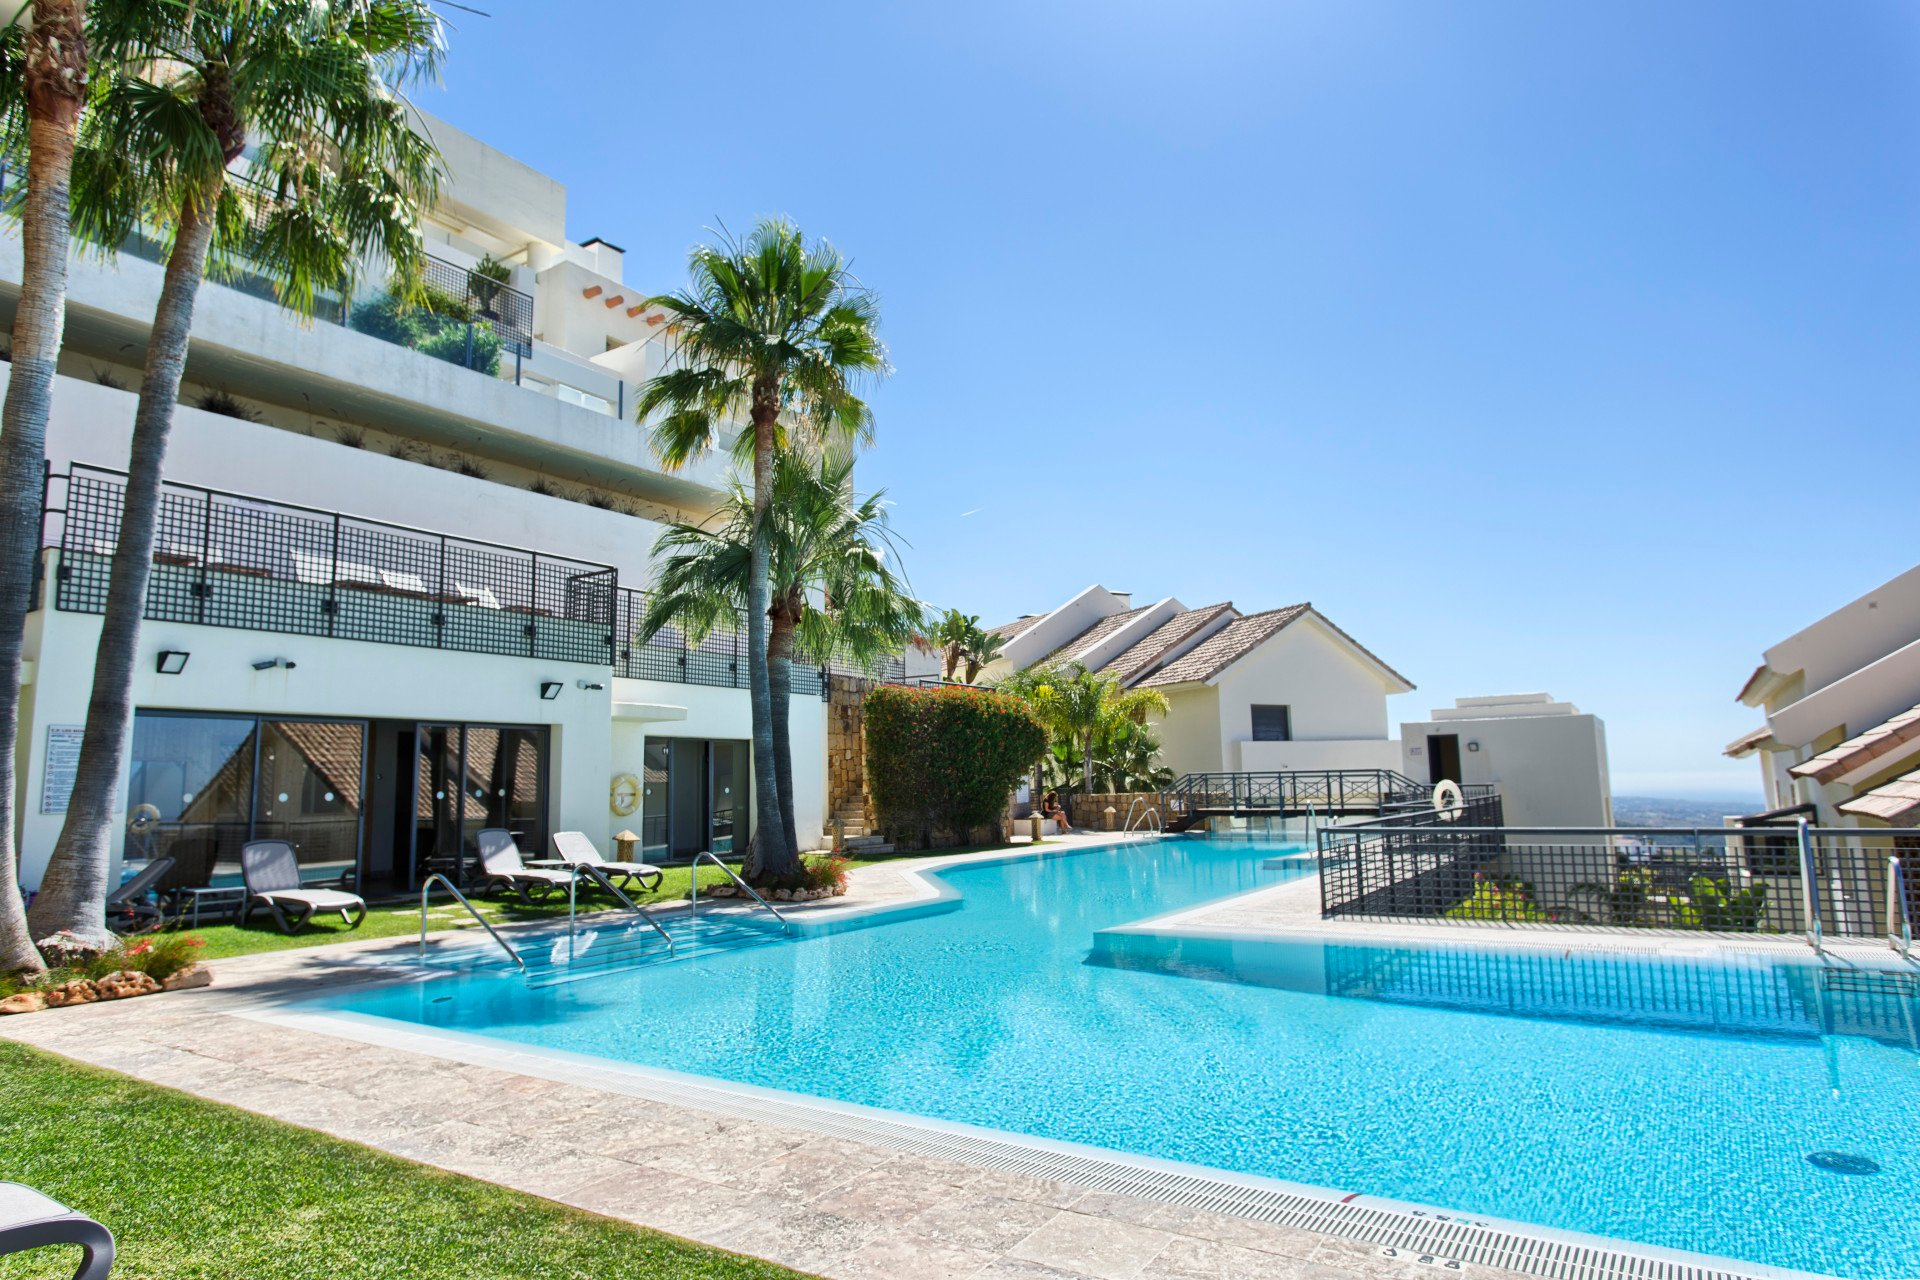 Penthouse in Marbella, Andalusia, Spain 1 - 10952868